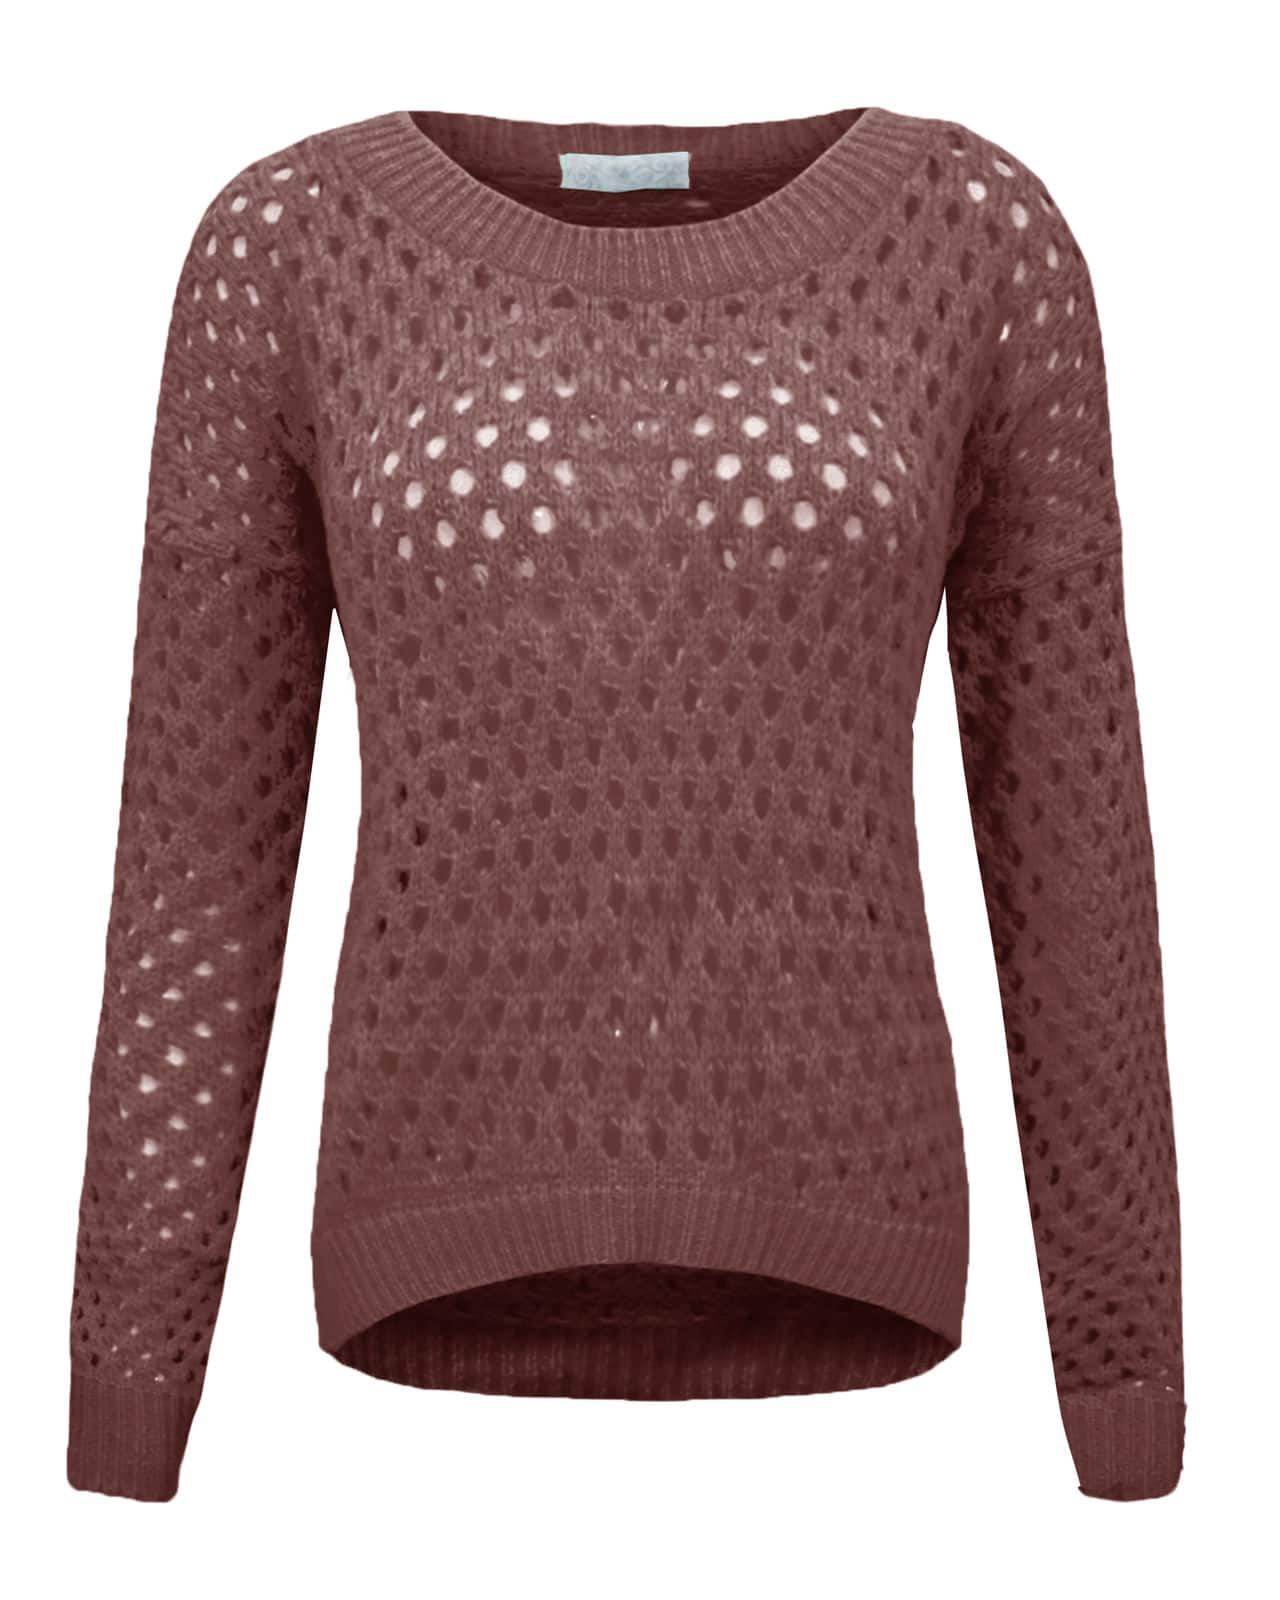 Ladies Womens Knitted Crochet Plain Jumper Soft Knit Crew Neck Baggy ...